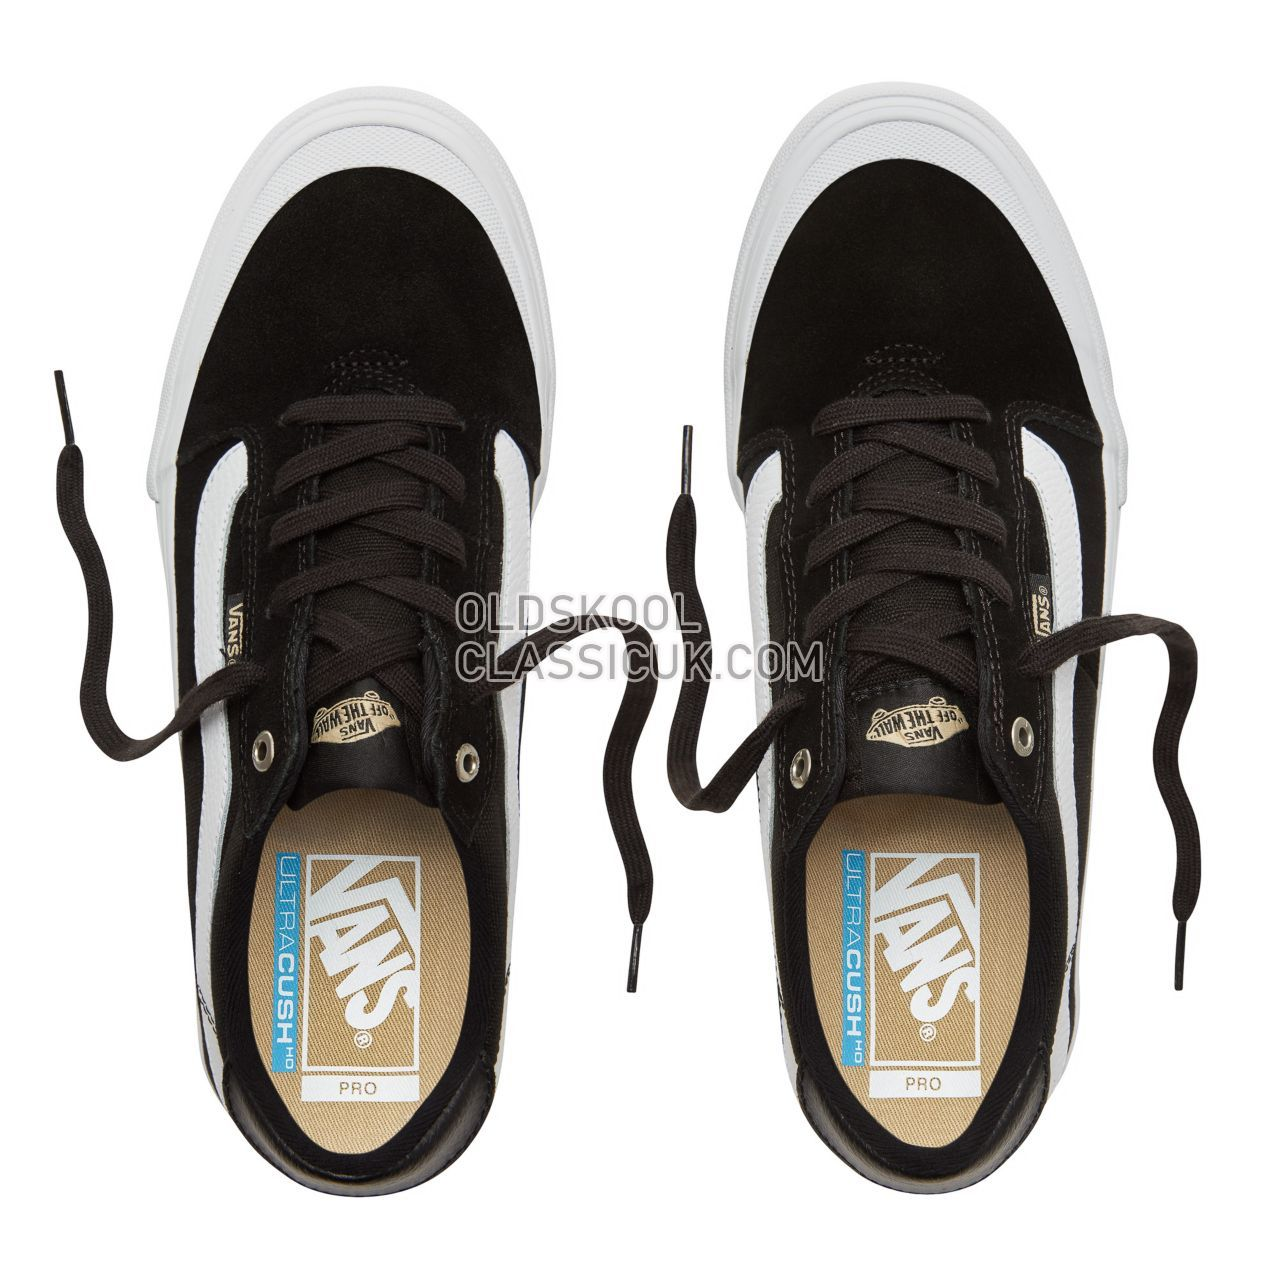 Vans Style 112 Pro Sneakers Mens Black/White/Khaki VN0A347XBEH Shoes